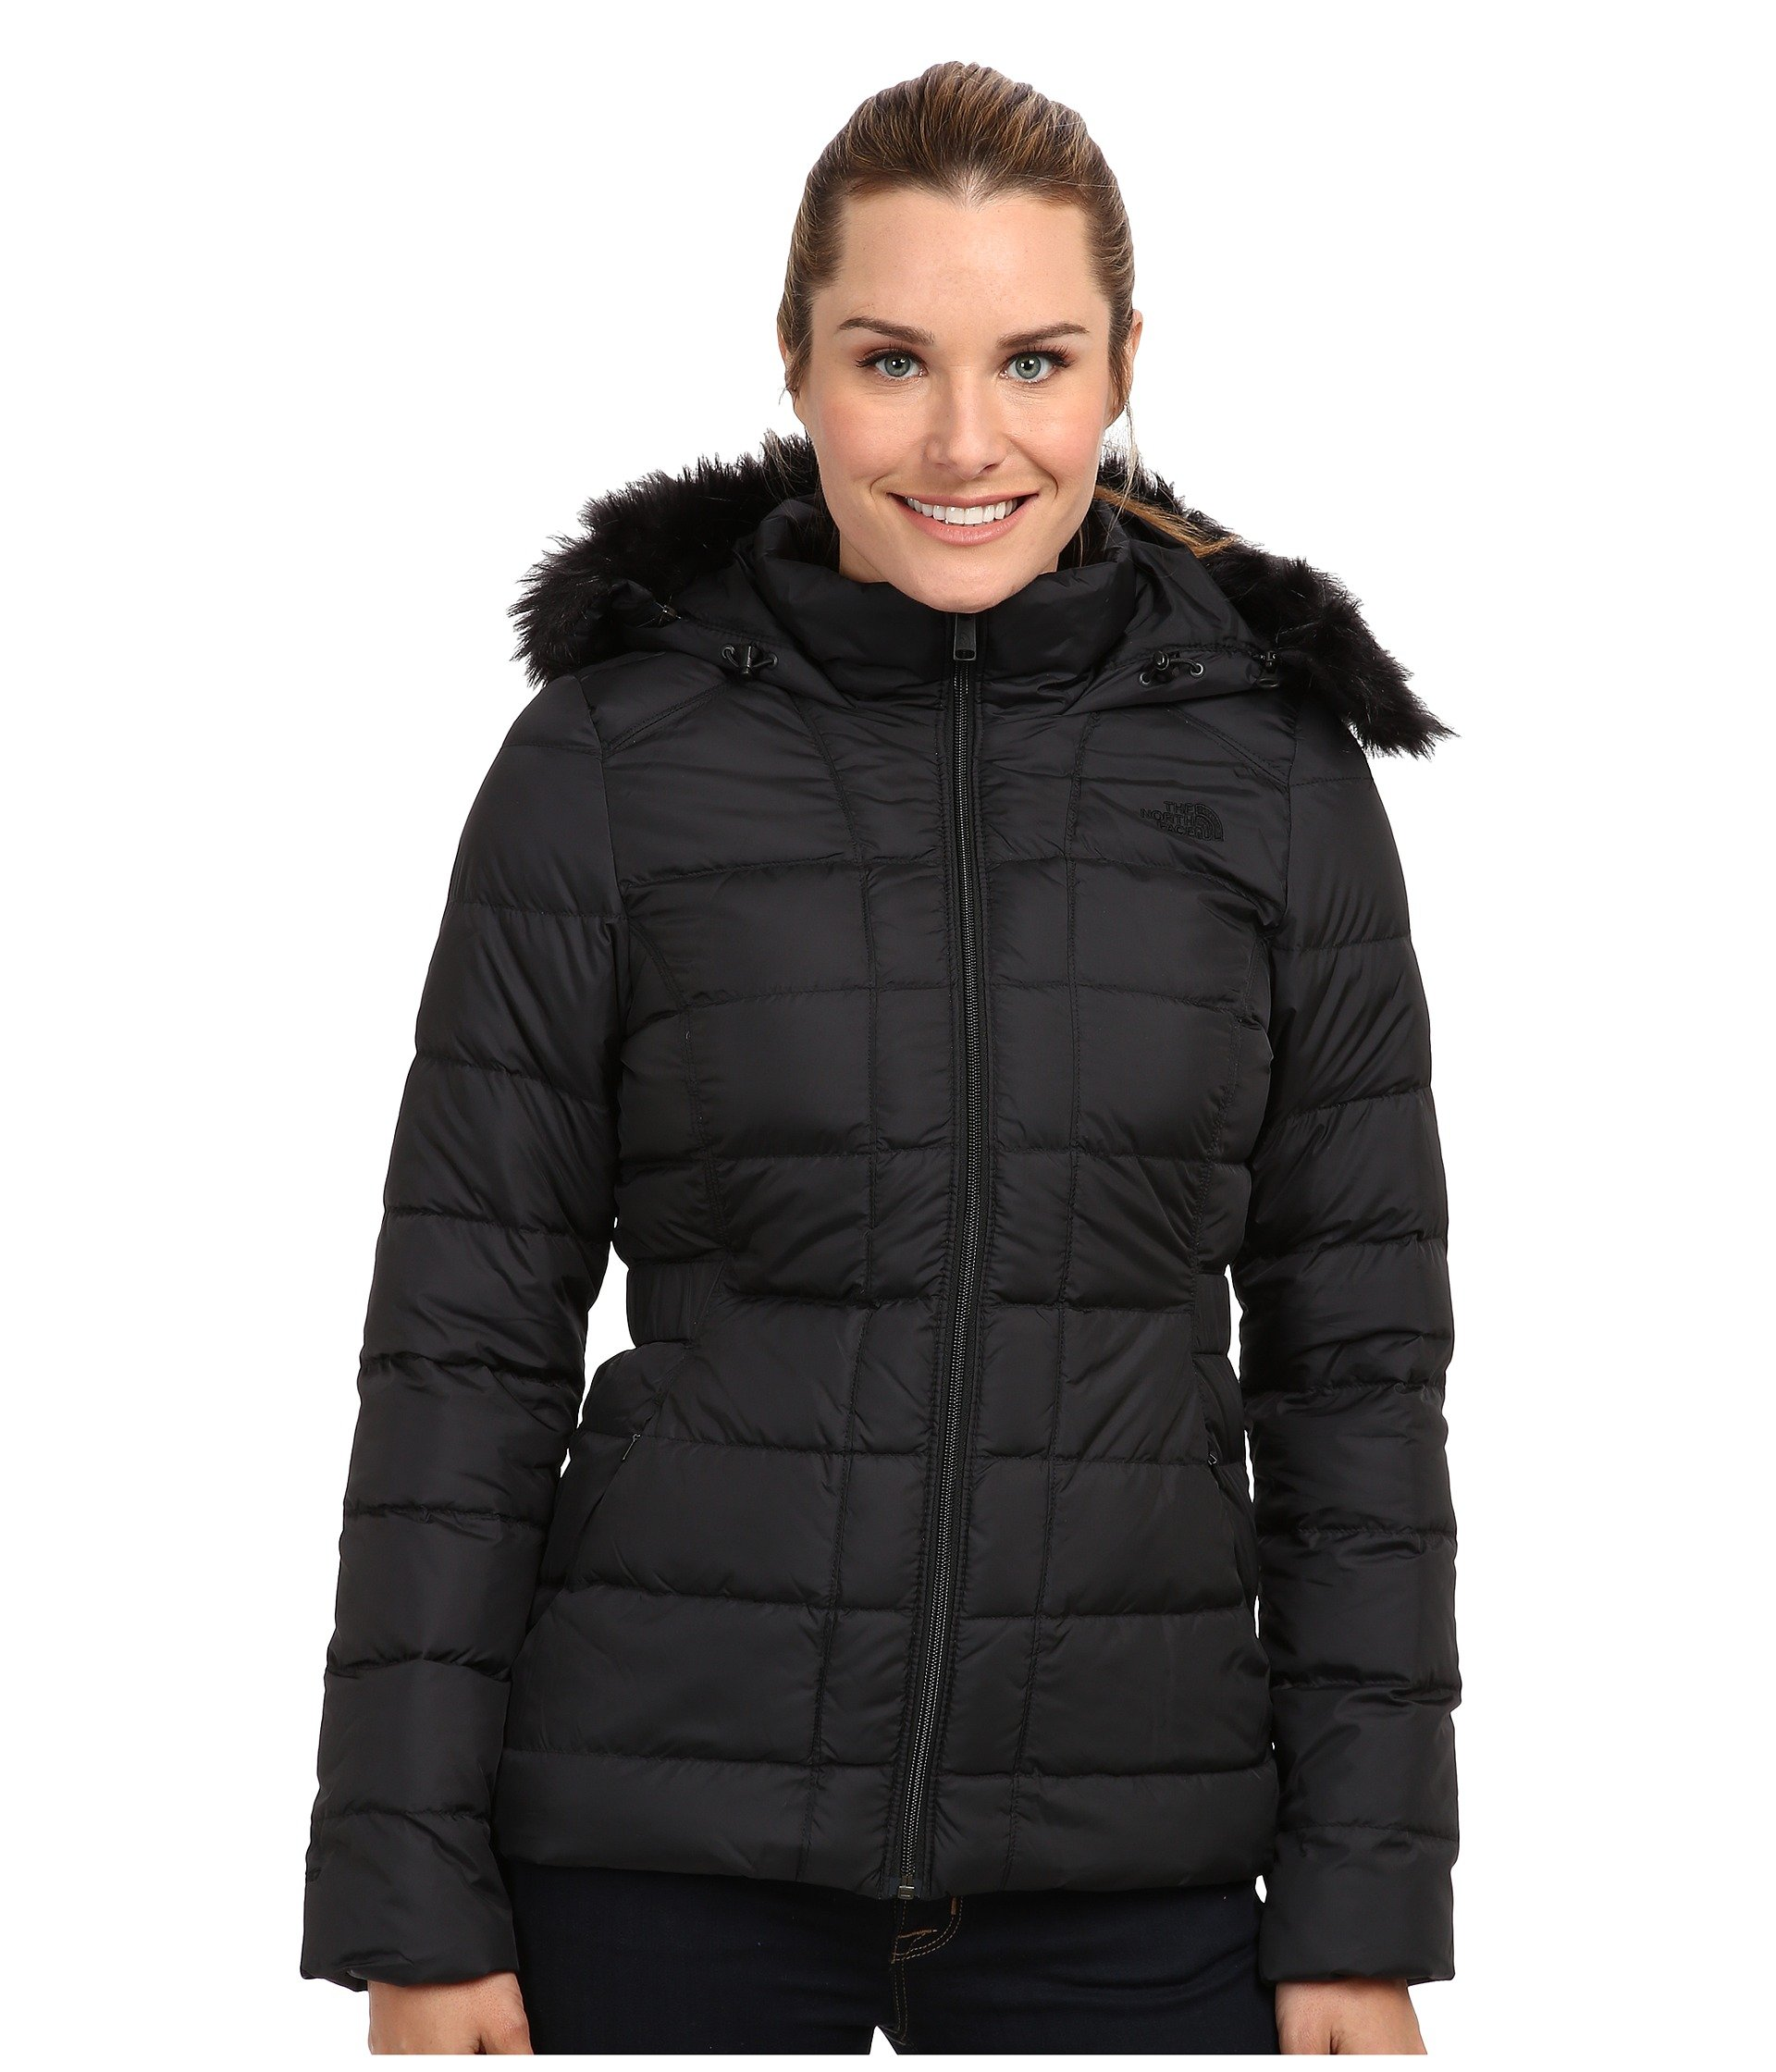 The north face women's gotham down parka